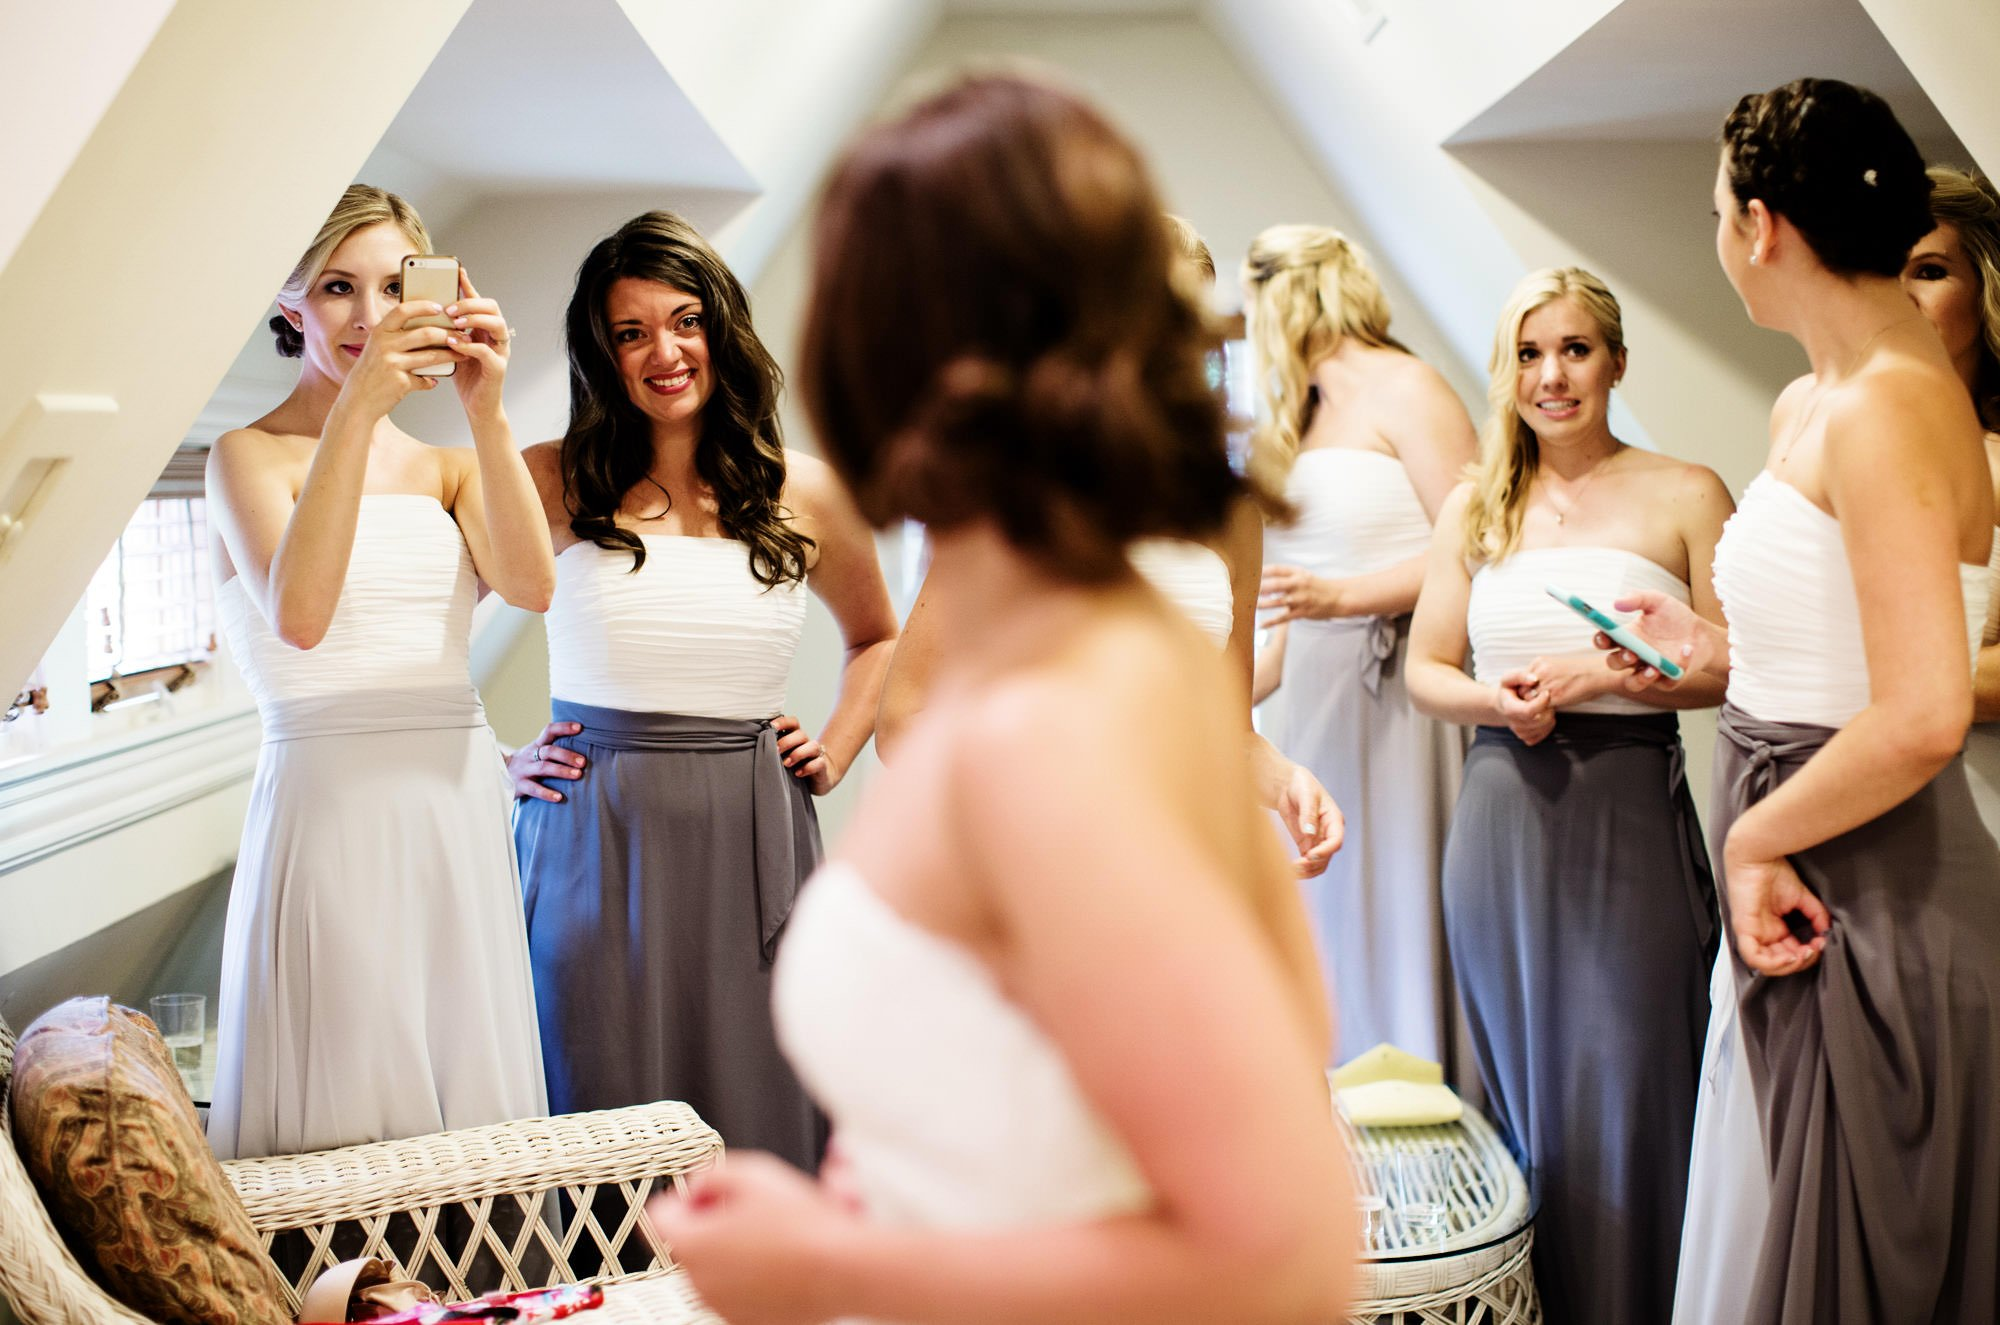 The bride puts on her wedding dress as her bridesmaids look on.